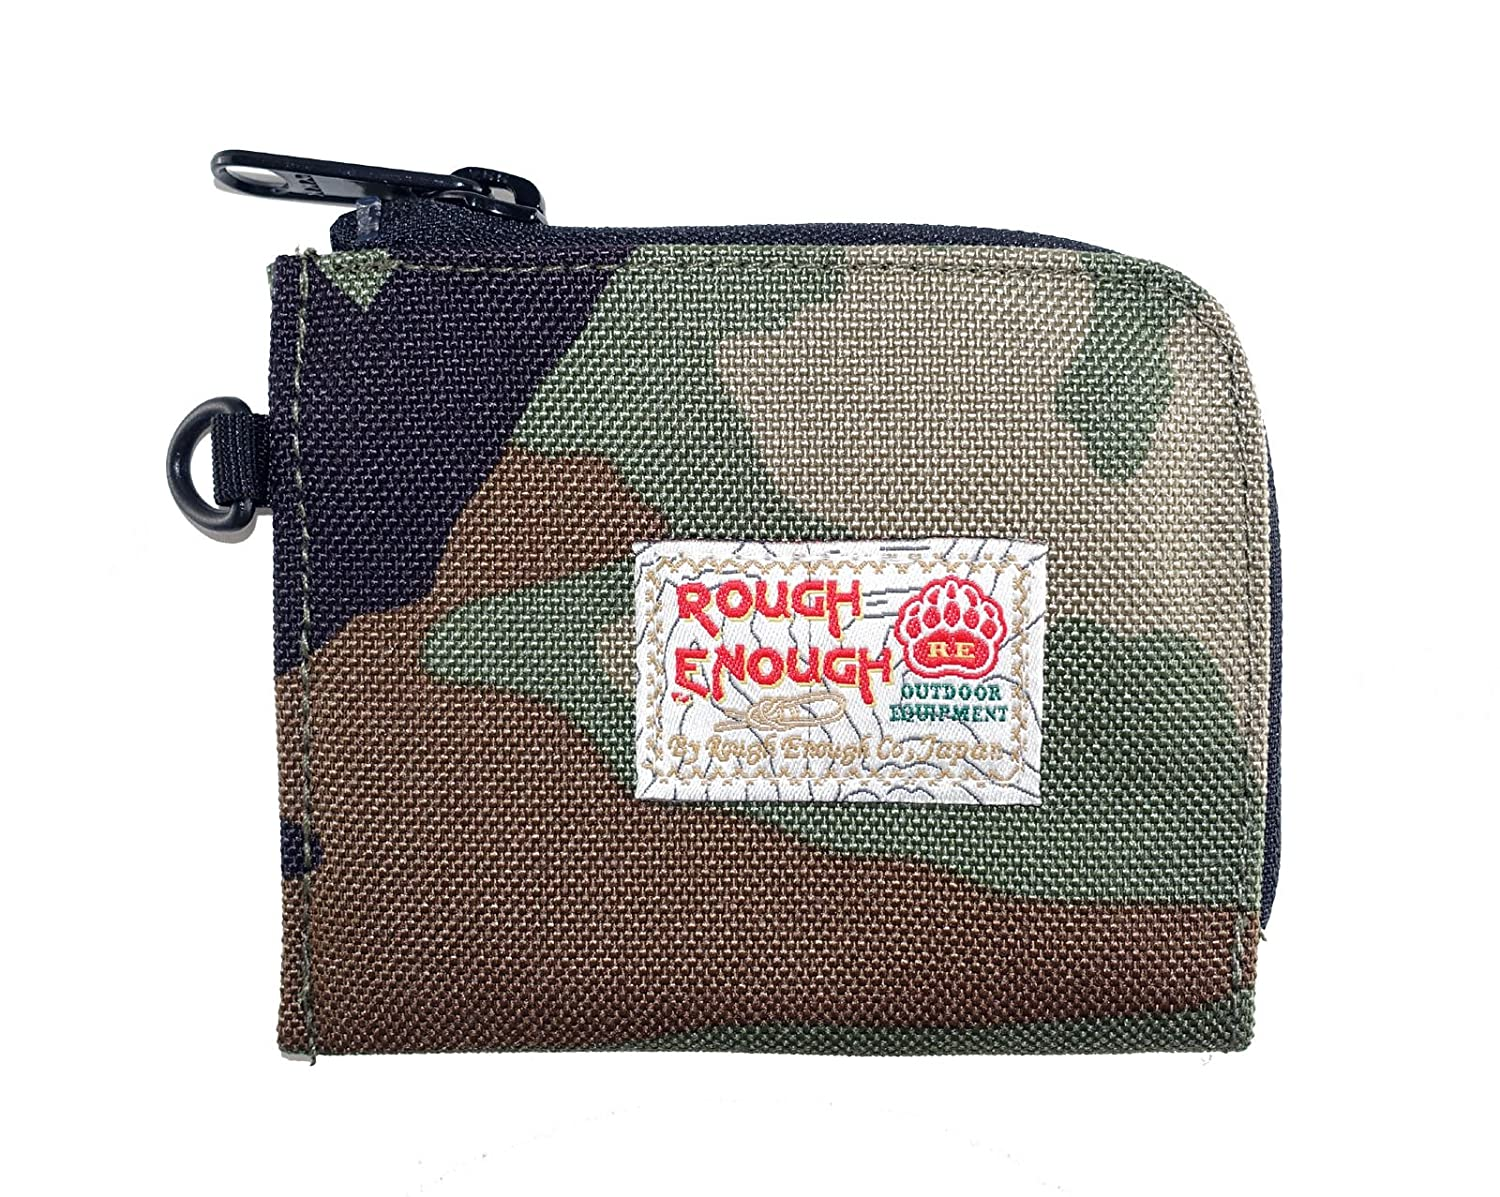 Rough Enough CORDURA Polyester Small Mini Bascis Stylish Portable Clutch Square Pocket Pouch Purse Case Bag Wallet Holder Organizer with zipper for Coins Cards Suits Boys Kids Students Men Camo ROUGH ENOUGH INC. RE8323